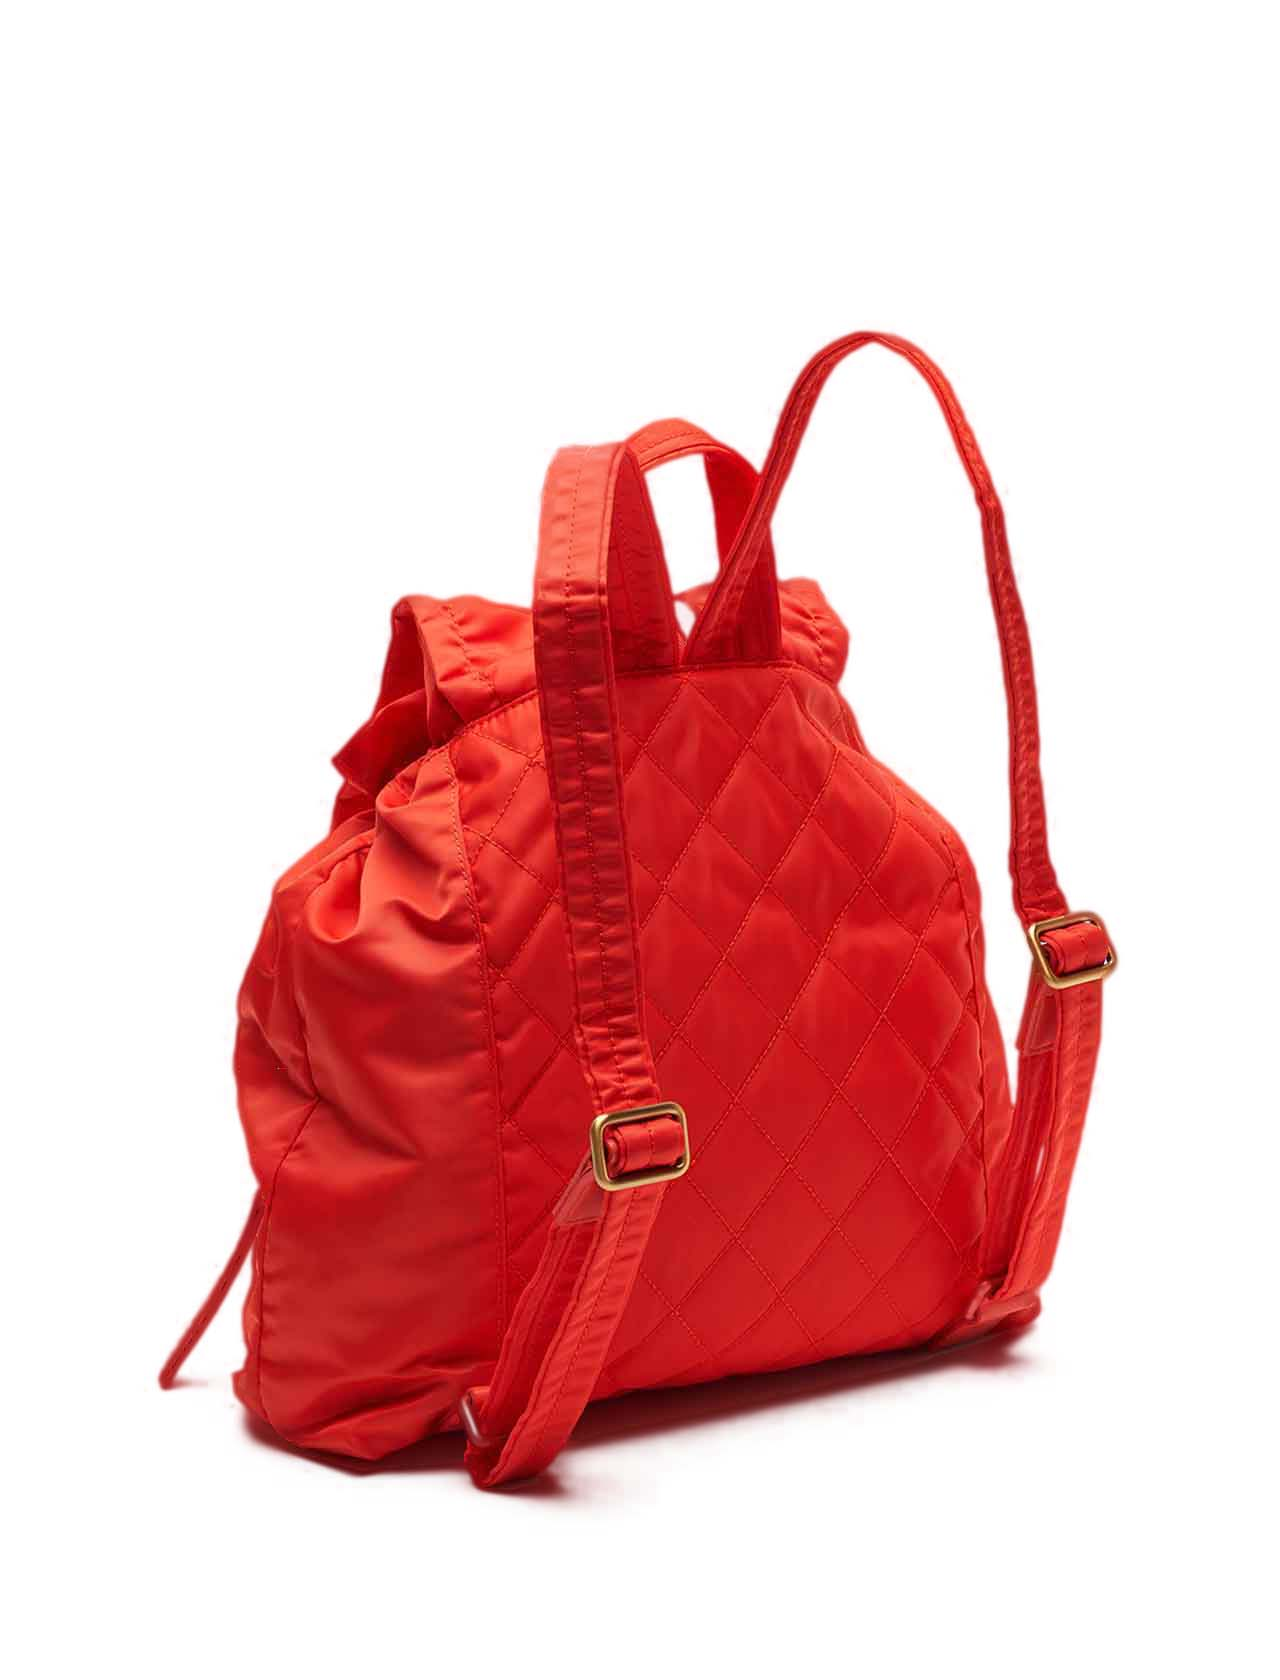 Woman Backpack in Red Nylon with Double Pocket and Metello Clip Closure Maliparmi | Bags and backpacks | BZ00346004130001